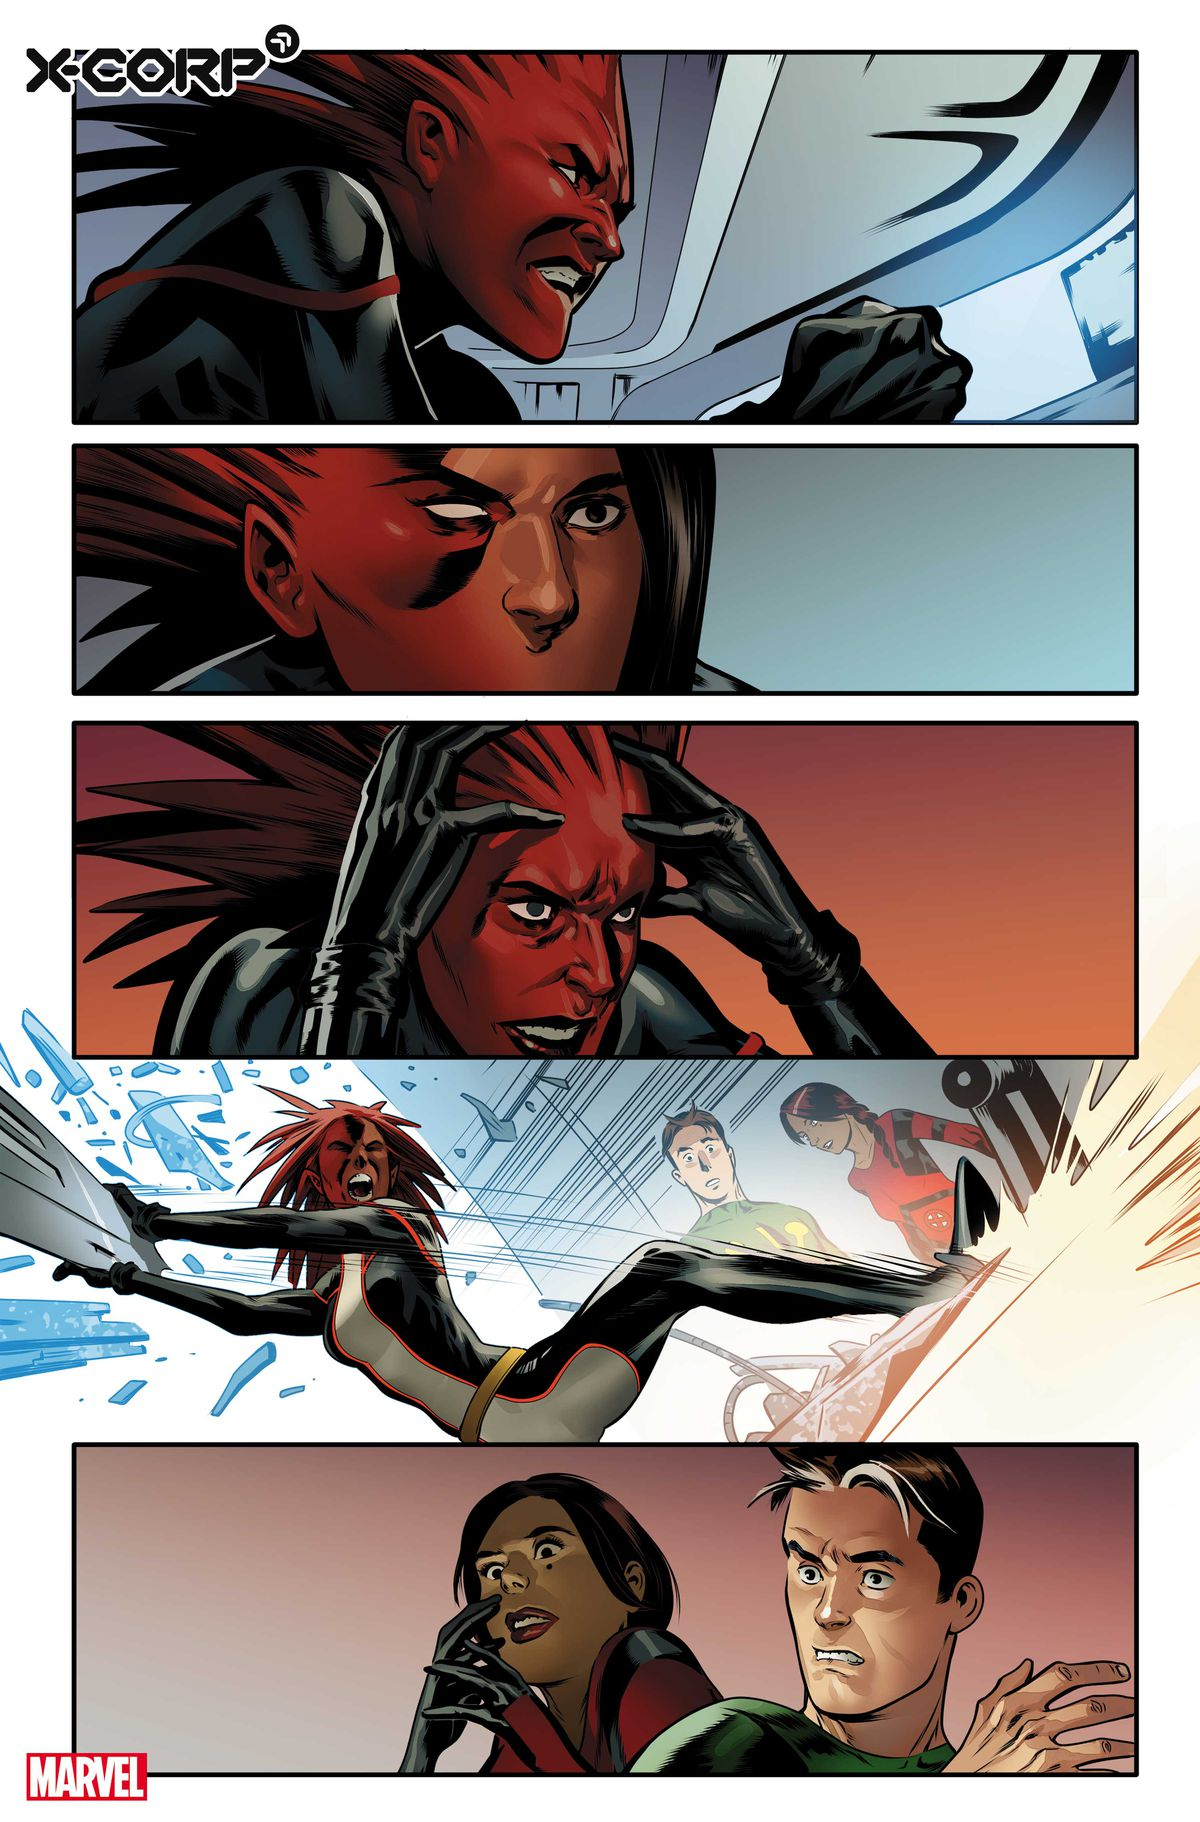 Monet St. Croix destroys a computer before Trinary and Multiple Man preview for X-Corp # 1, Marvel Comics (2021)